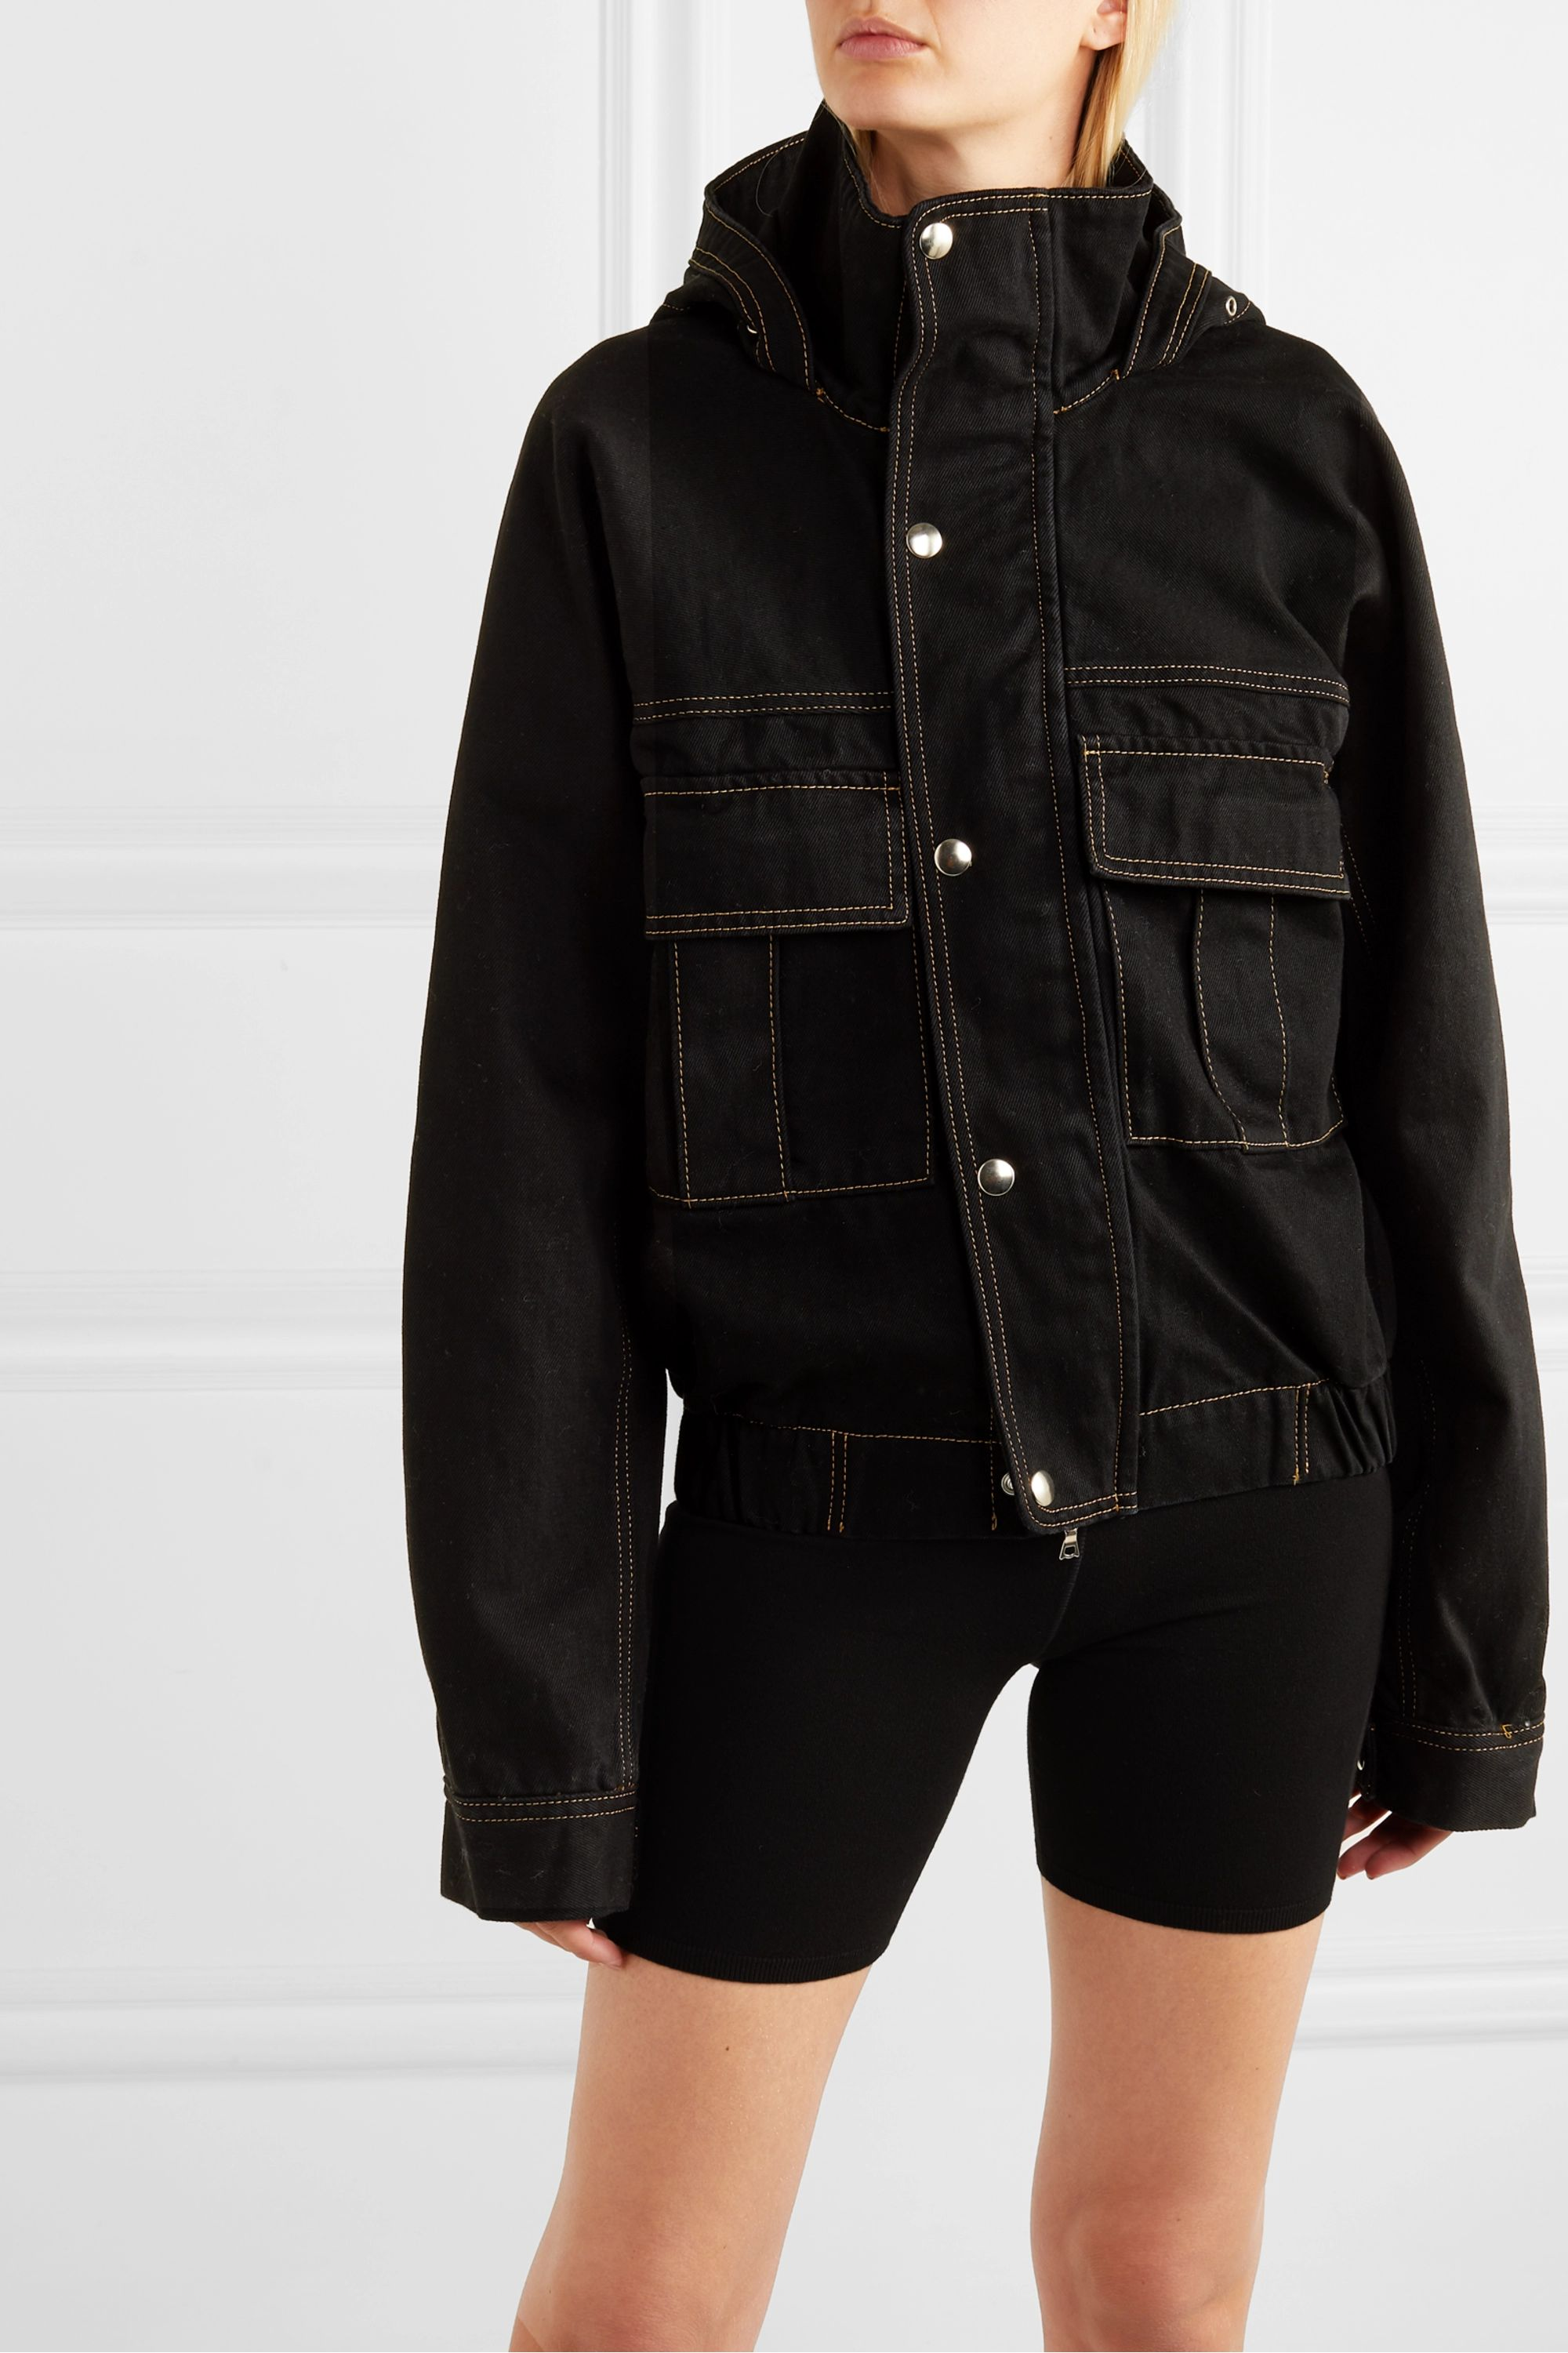 Matthew Adams Dolan Hooded denim jacket